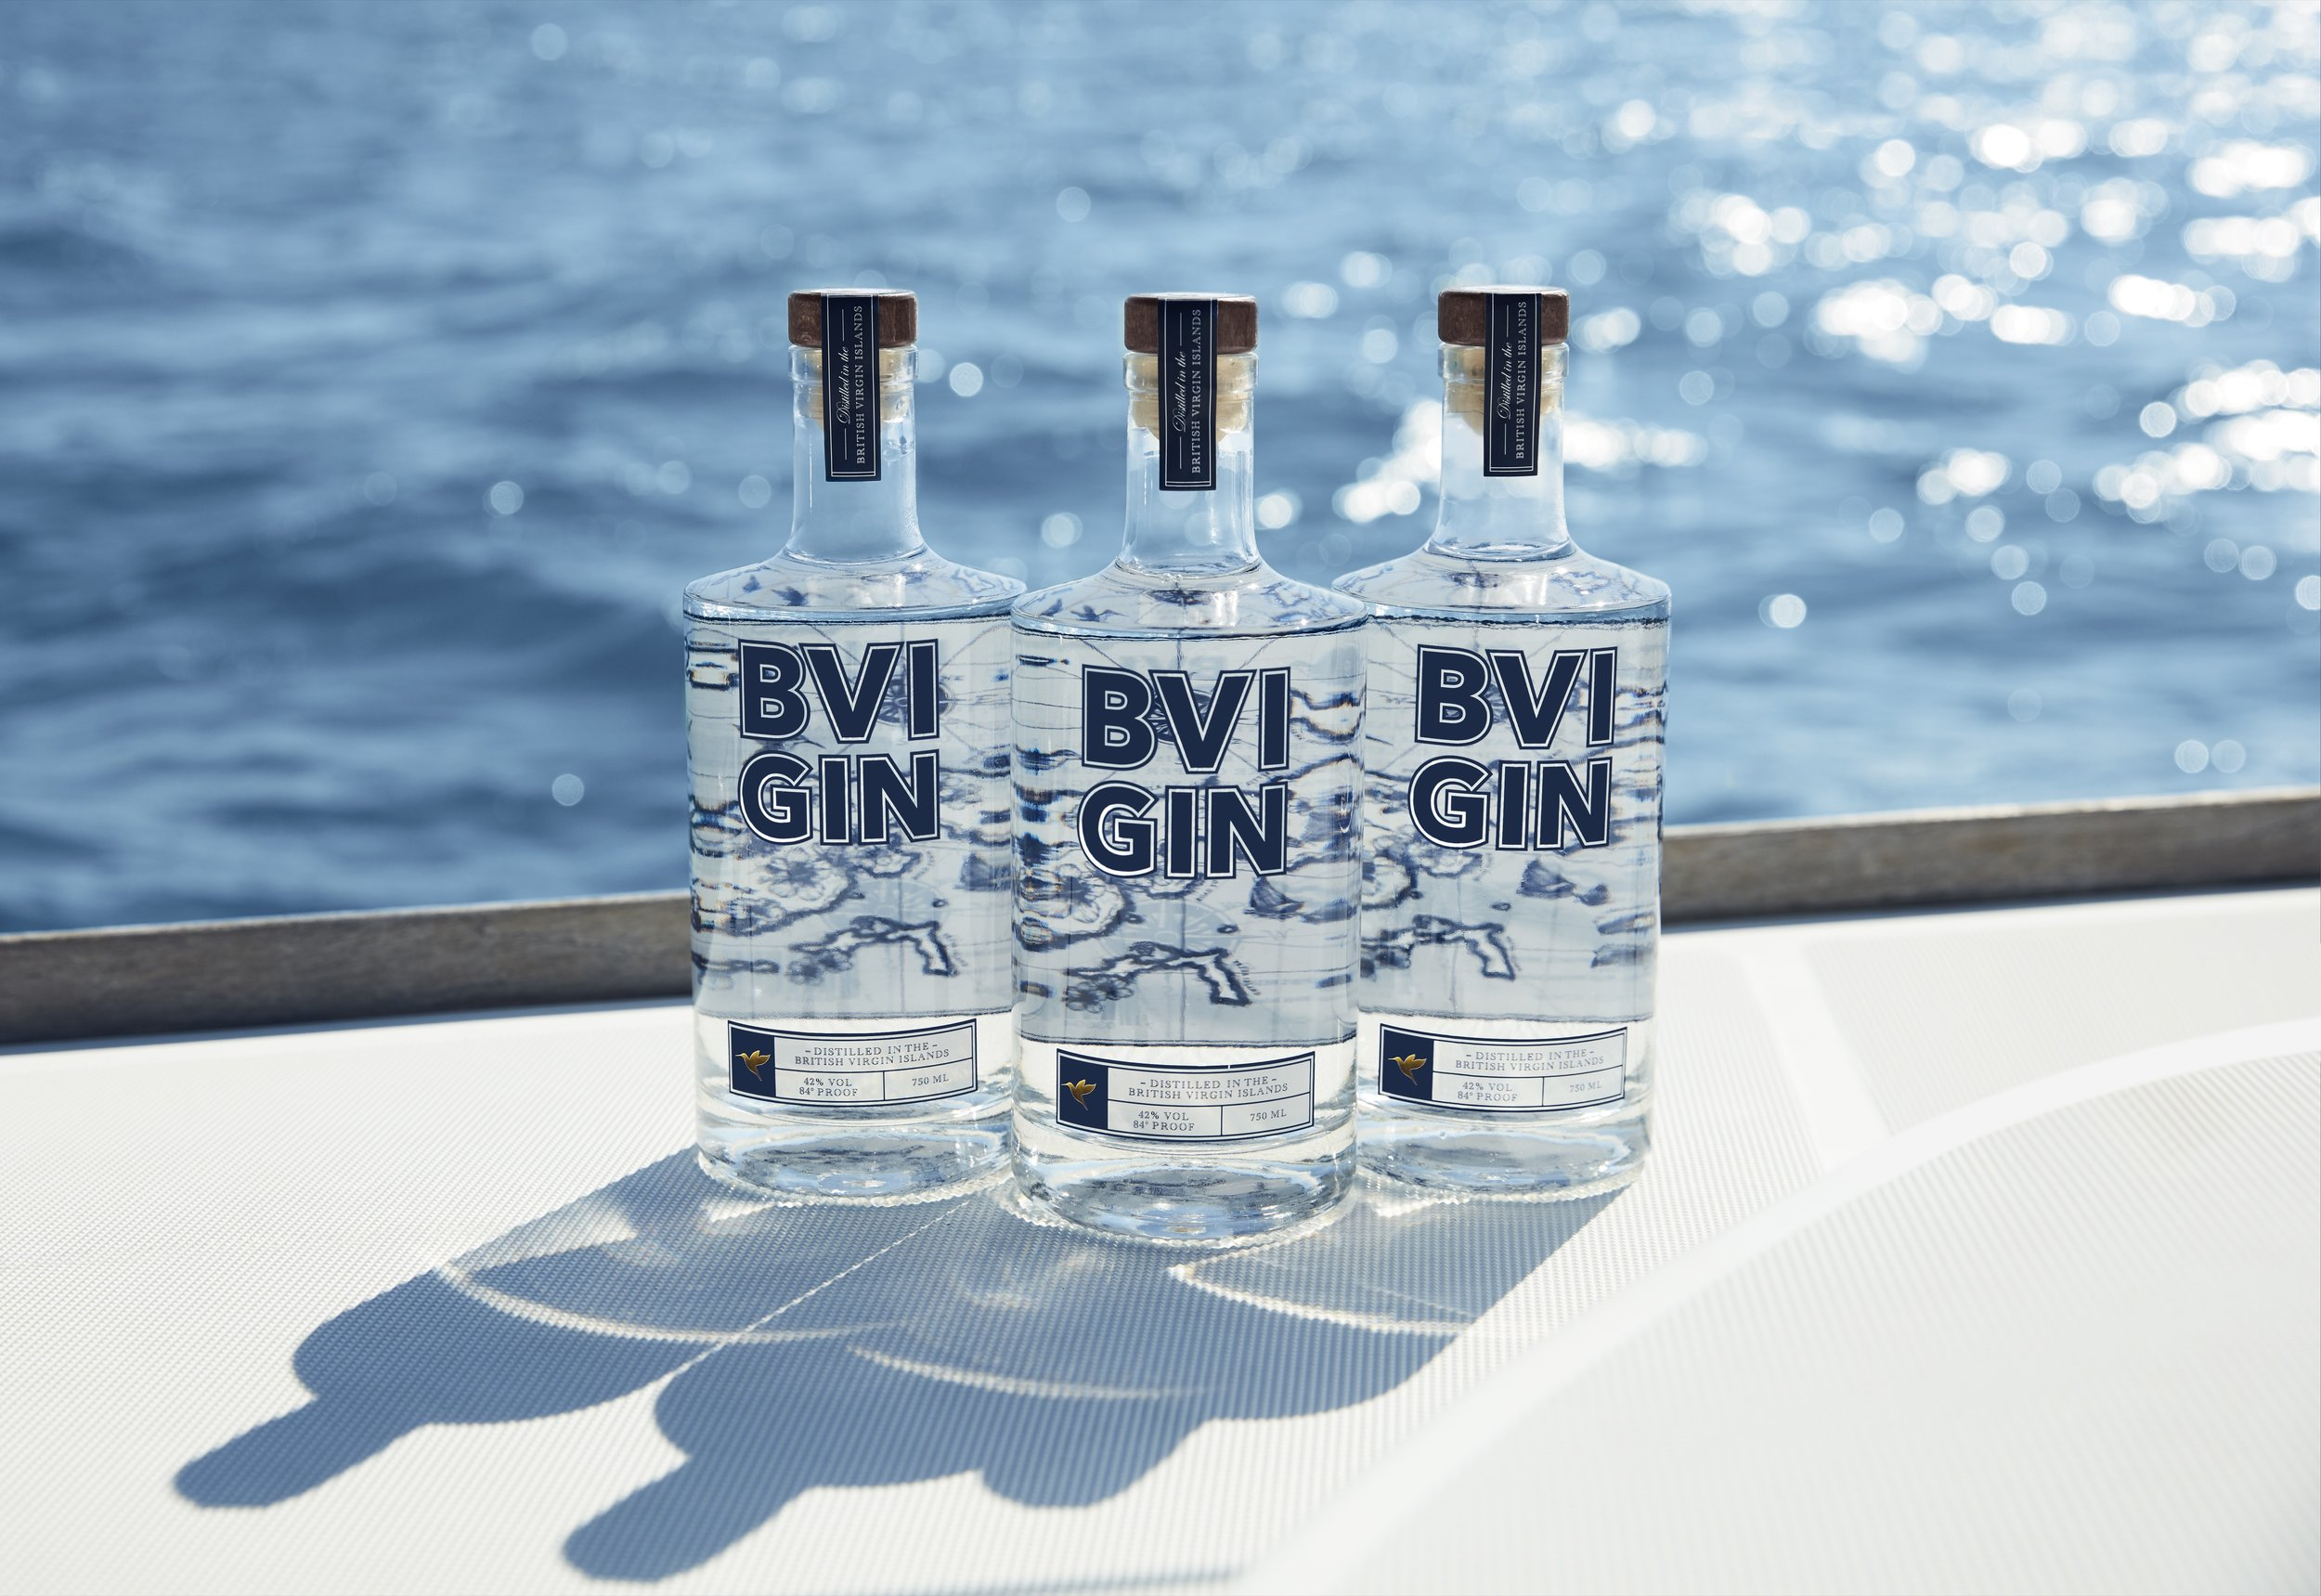 - Each bottle of BVI GIN is distilled at our distillery close to the picturesque Little Bay Beach on the BVI's largest island of Tortola. The gin is created from a carefully crafted, contemporary recipe and is distilled using traditional methods in a bespoke copper column still. It is then bottled and labelled by hand resulting in a truly authentic, handcrafted BVI product.